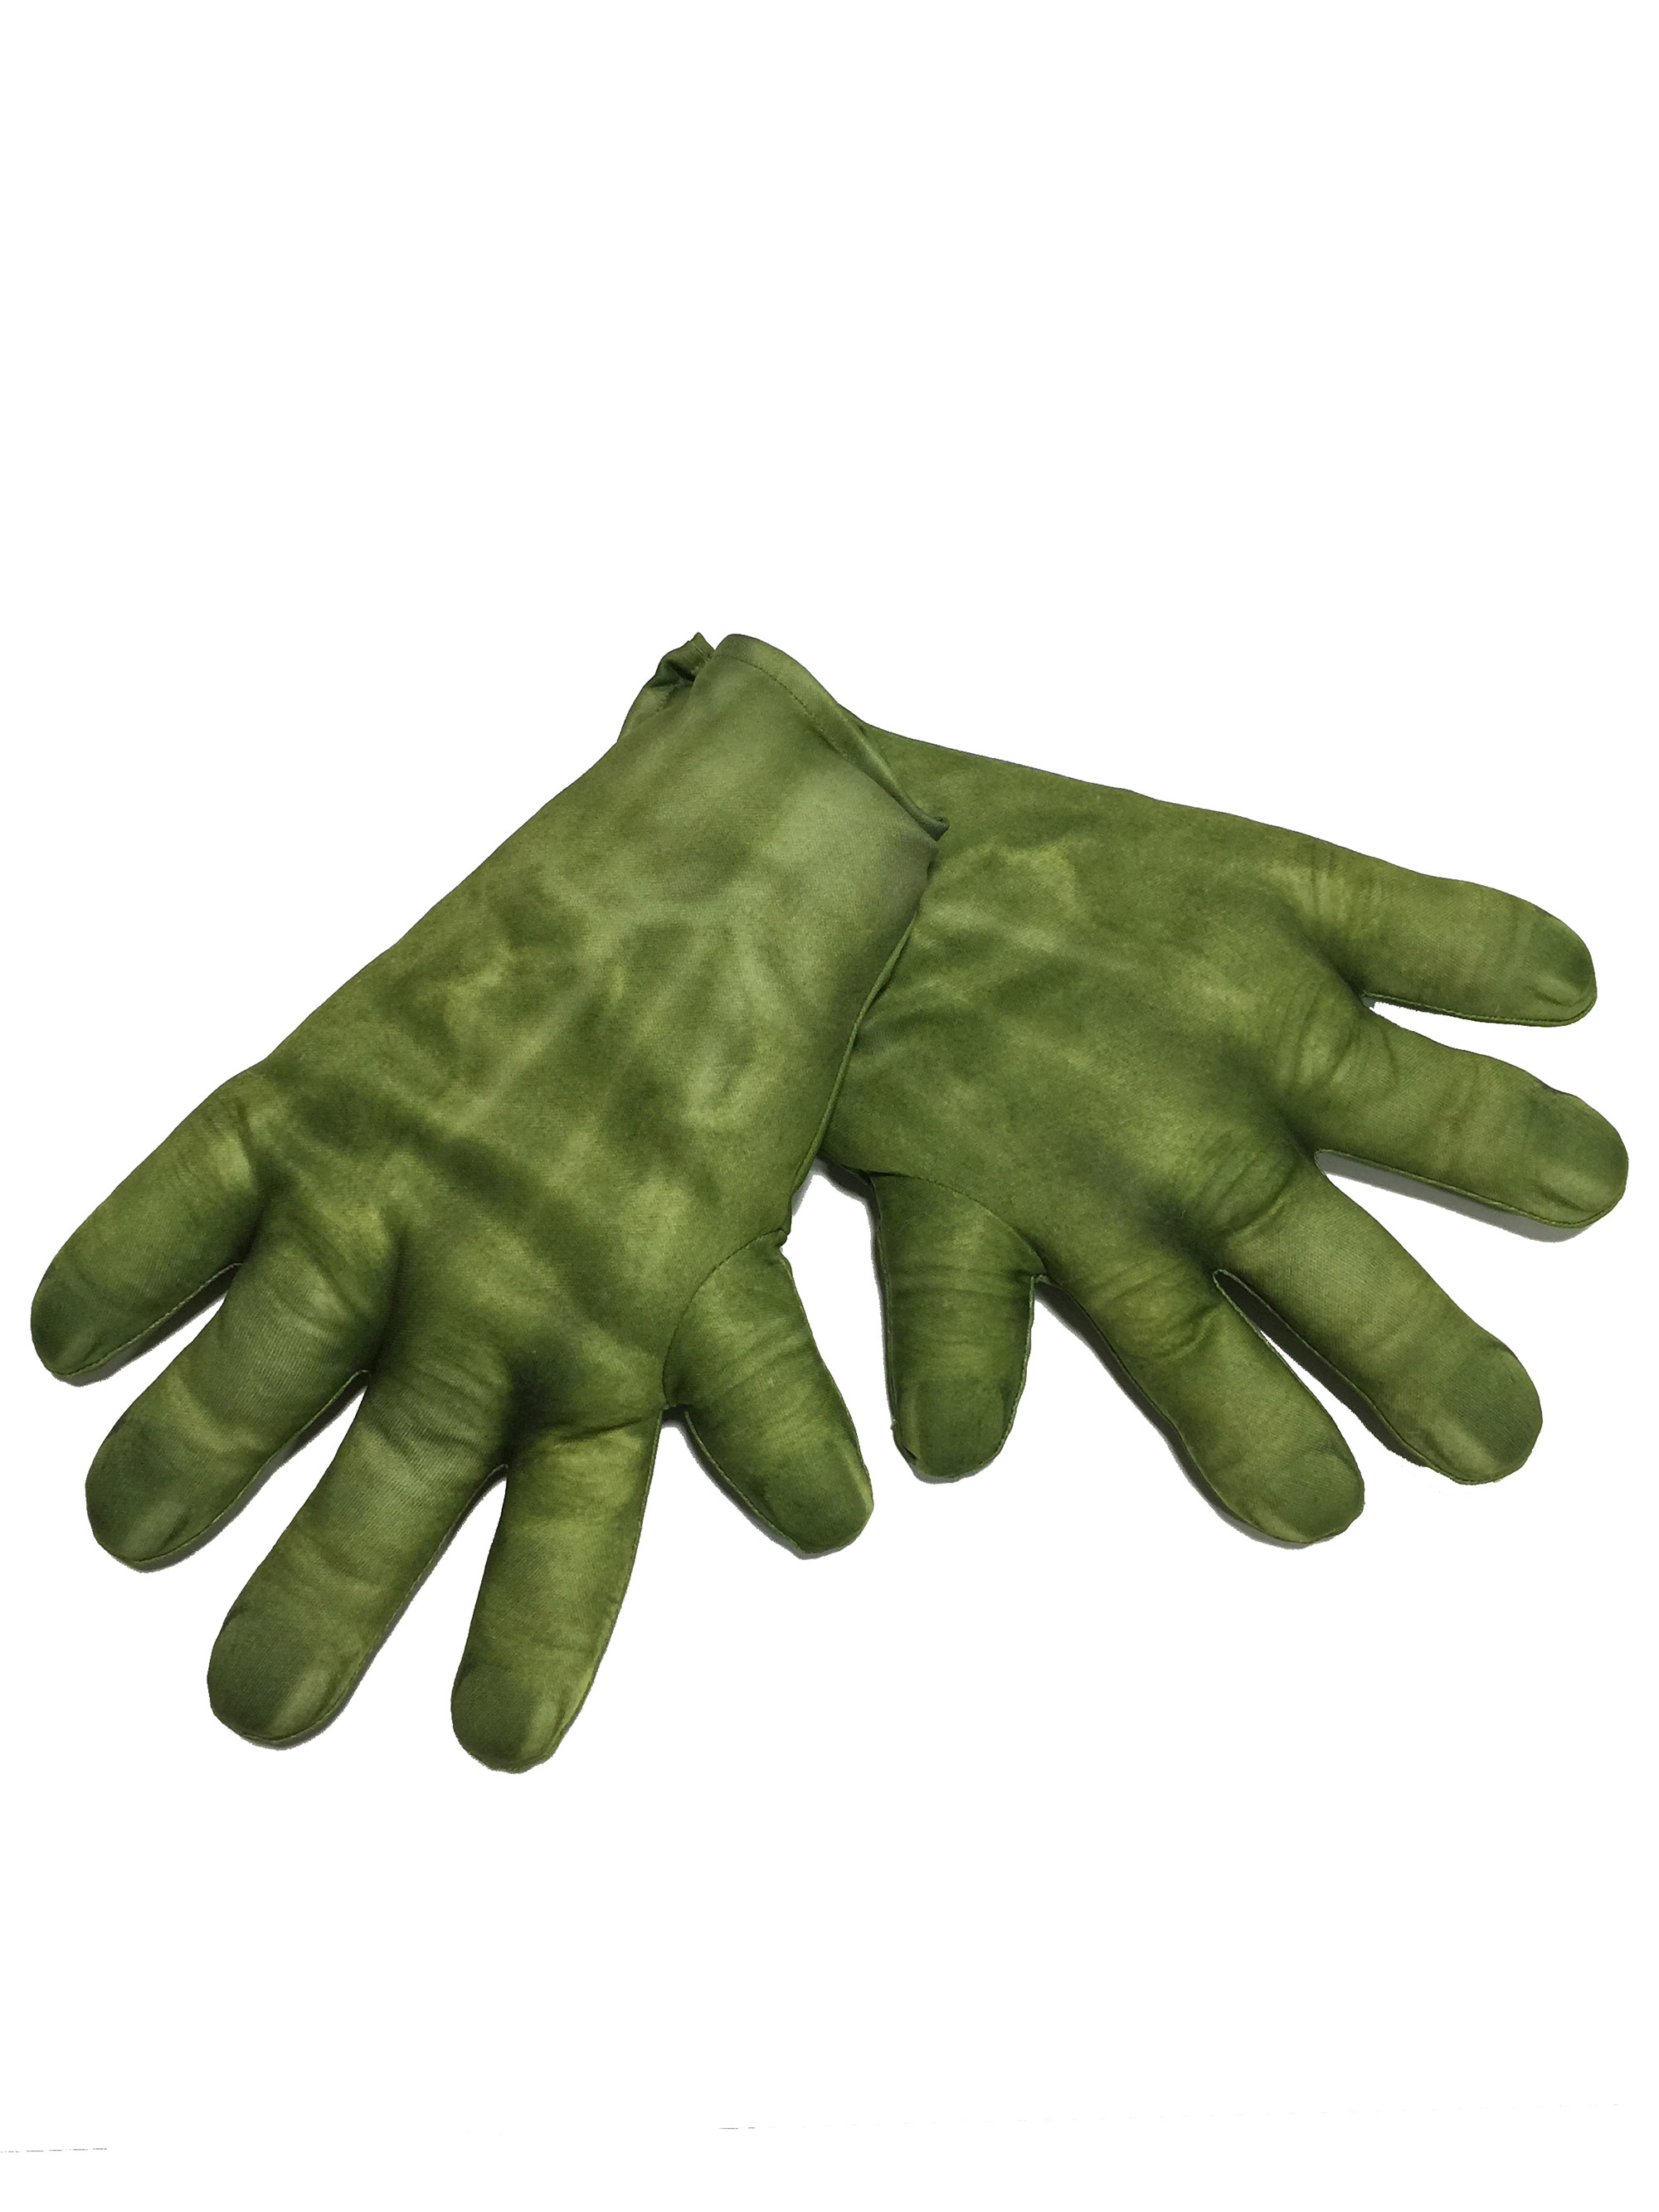 Avengers 2 Hulk Gloves 36362R